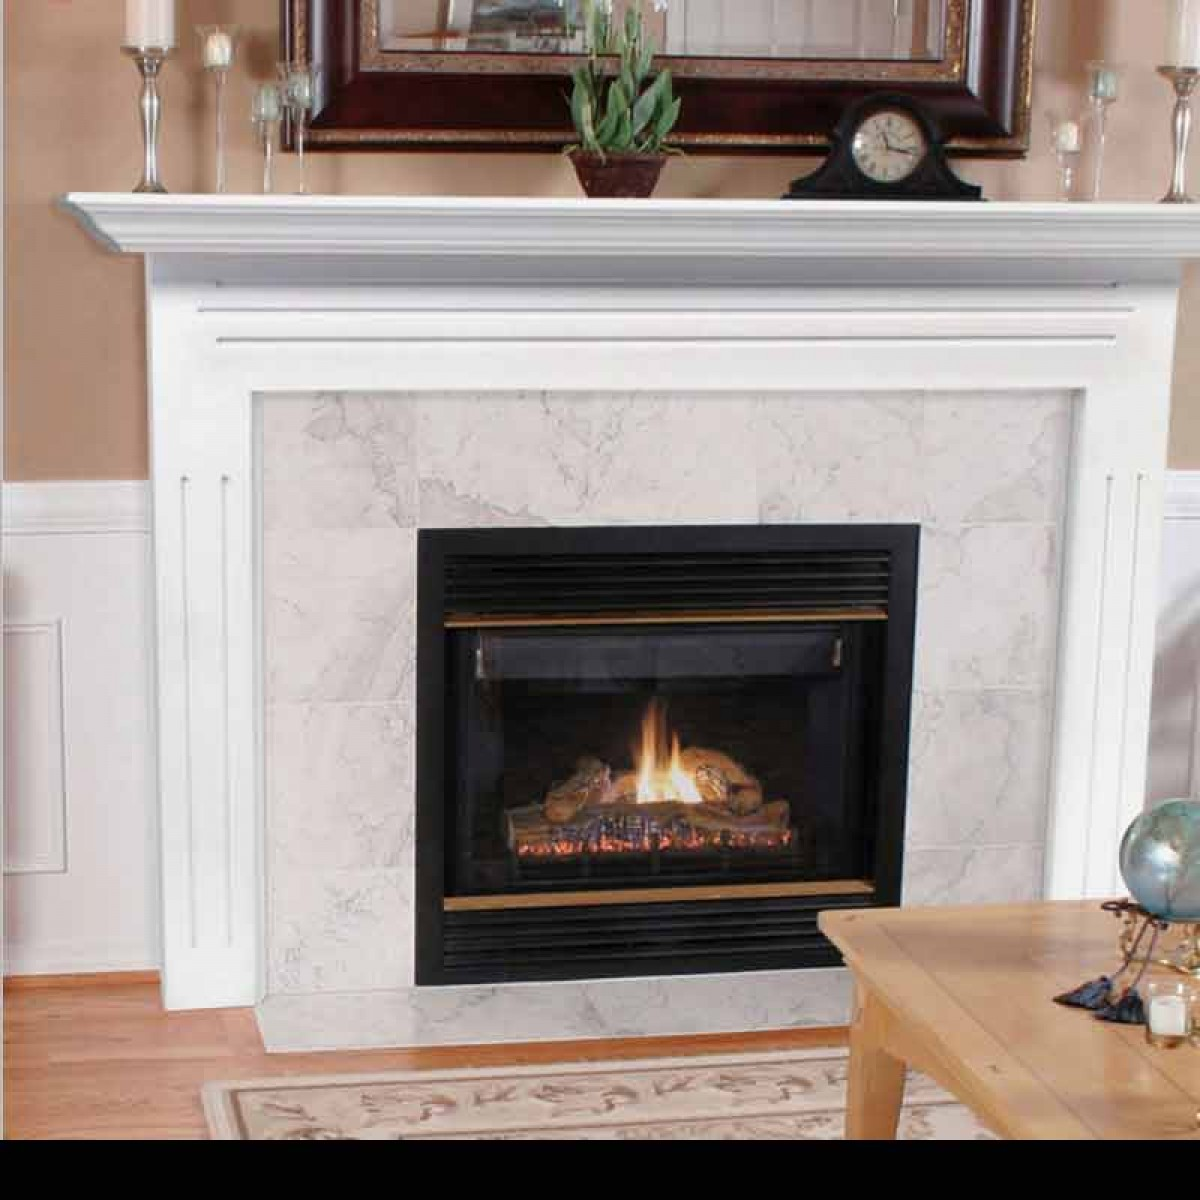 Pearl Mantels Avondale Fireplace Surround: Pearl Mantels 510-48 The Newport Fireplace Mantel At